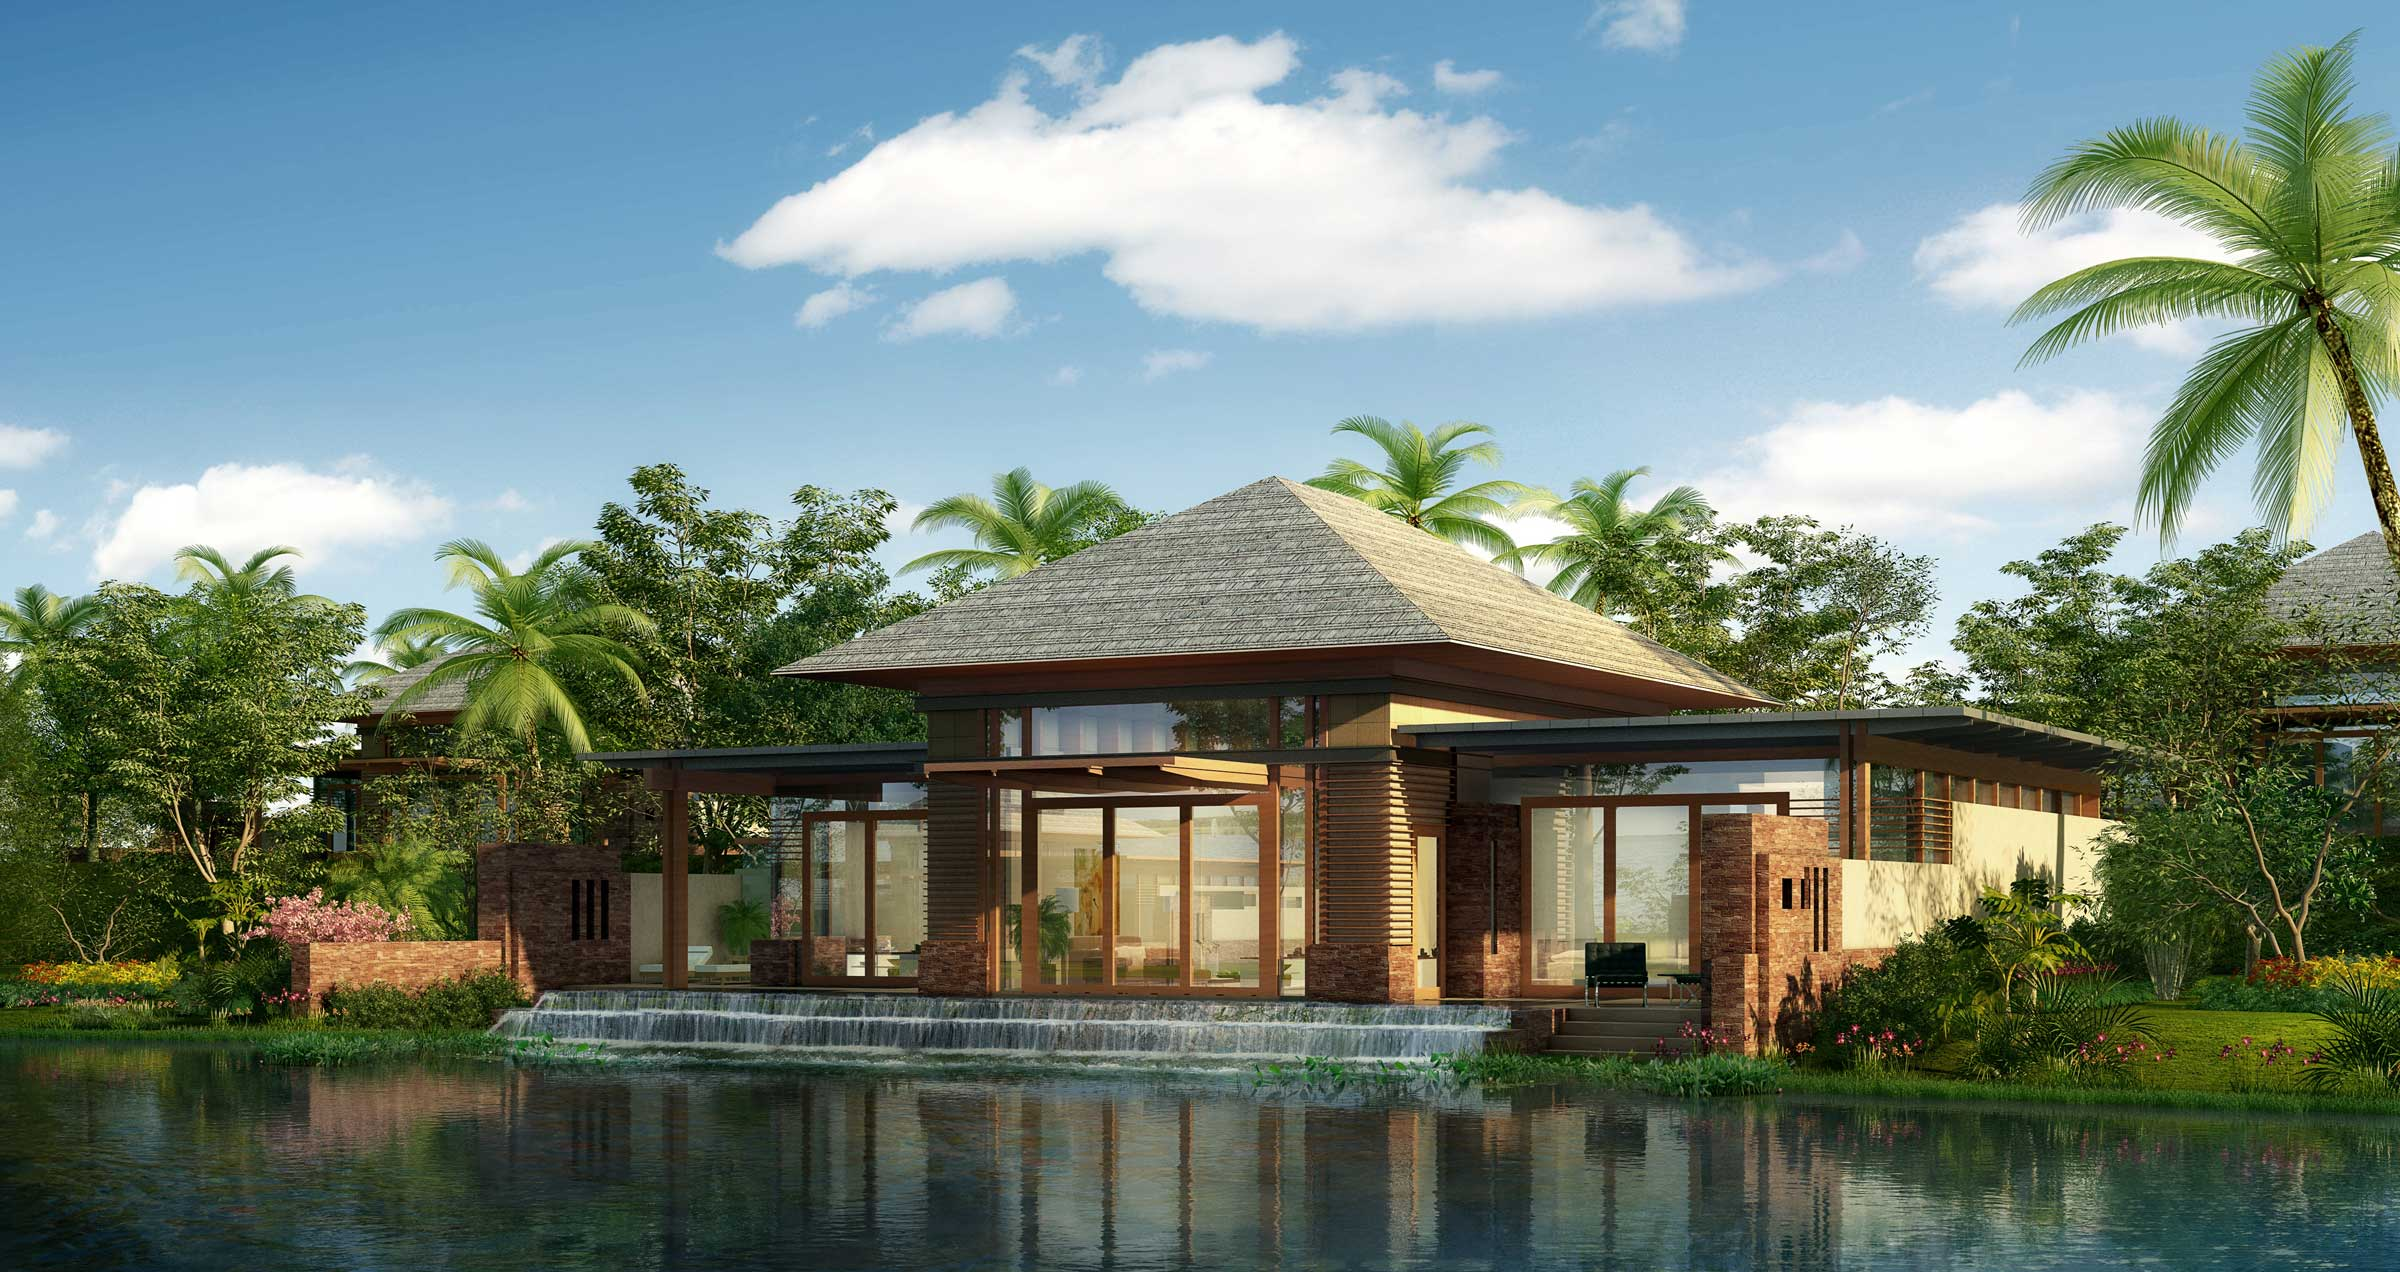 A luxurious tropical resort hotel architecture design for Luxury resorts